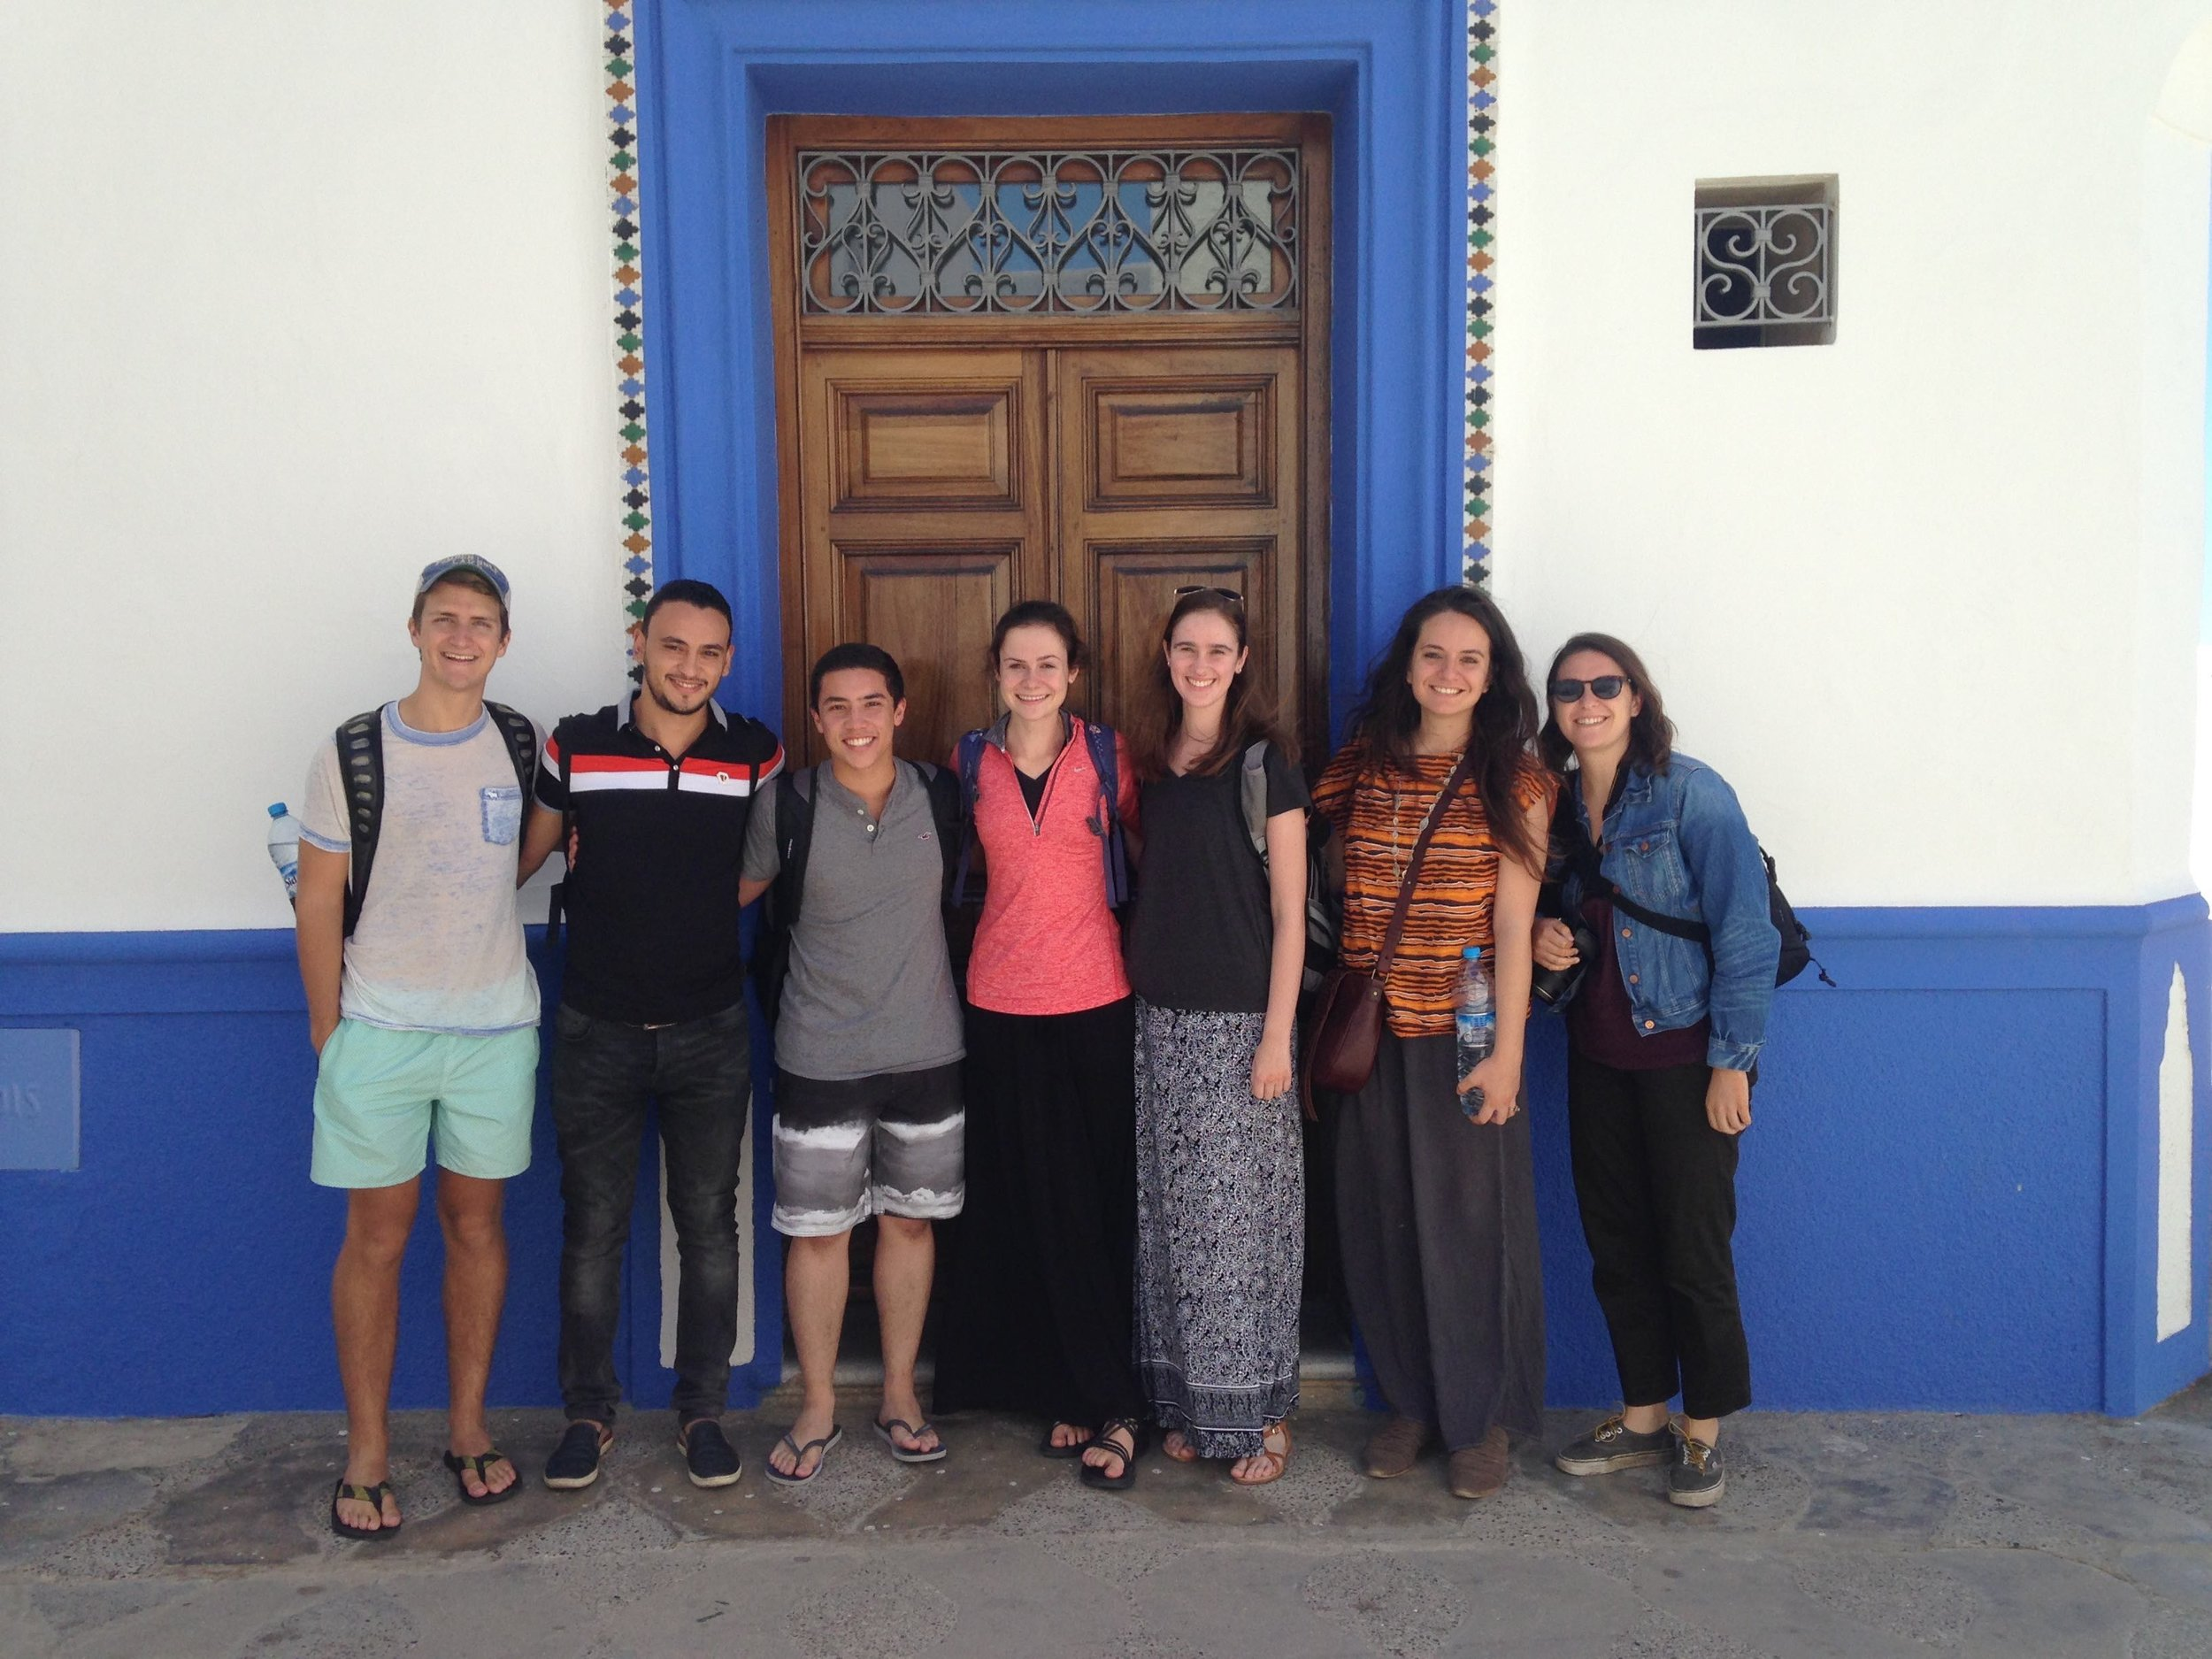 Students smile before one of the many beautiful doors in Asilah.